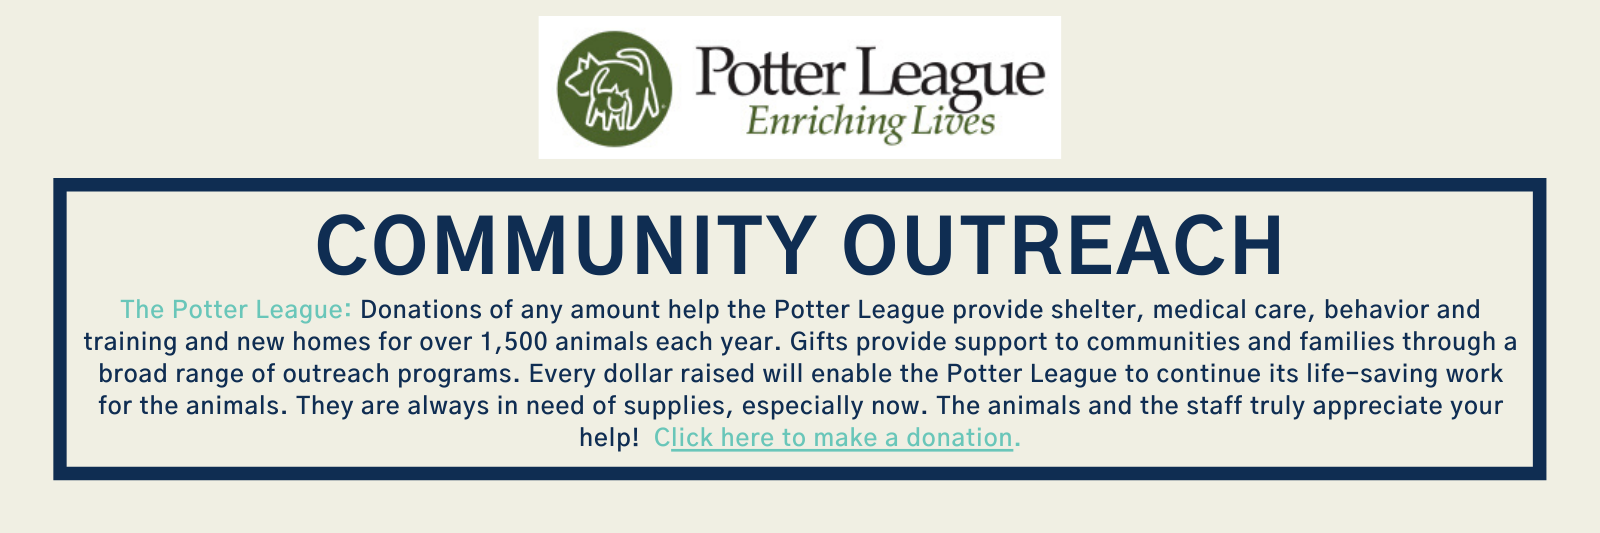 Community-Outreach---Potter-League.png